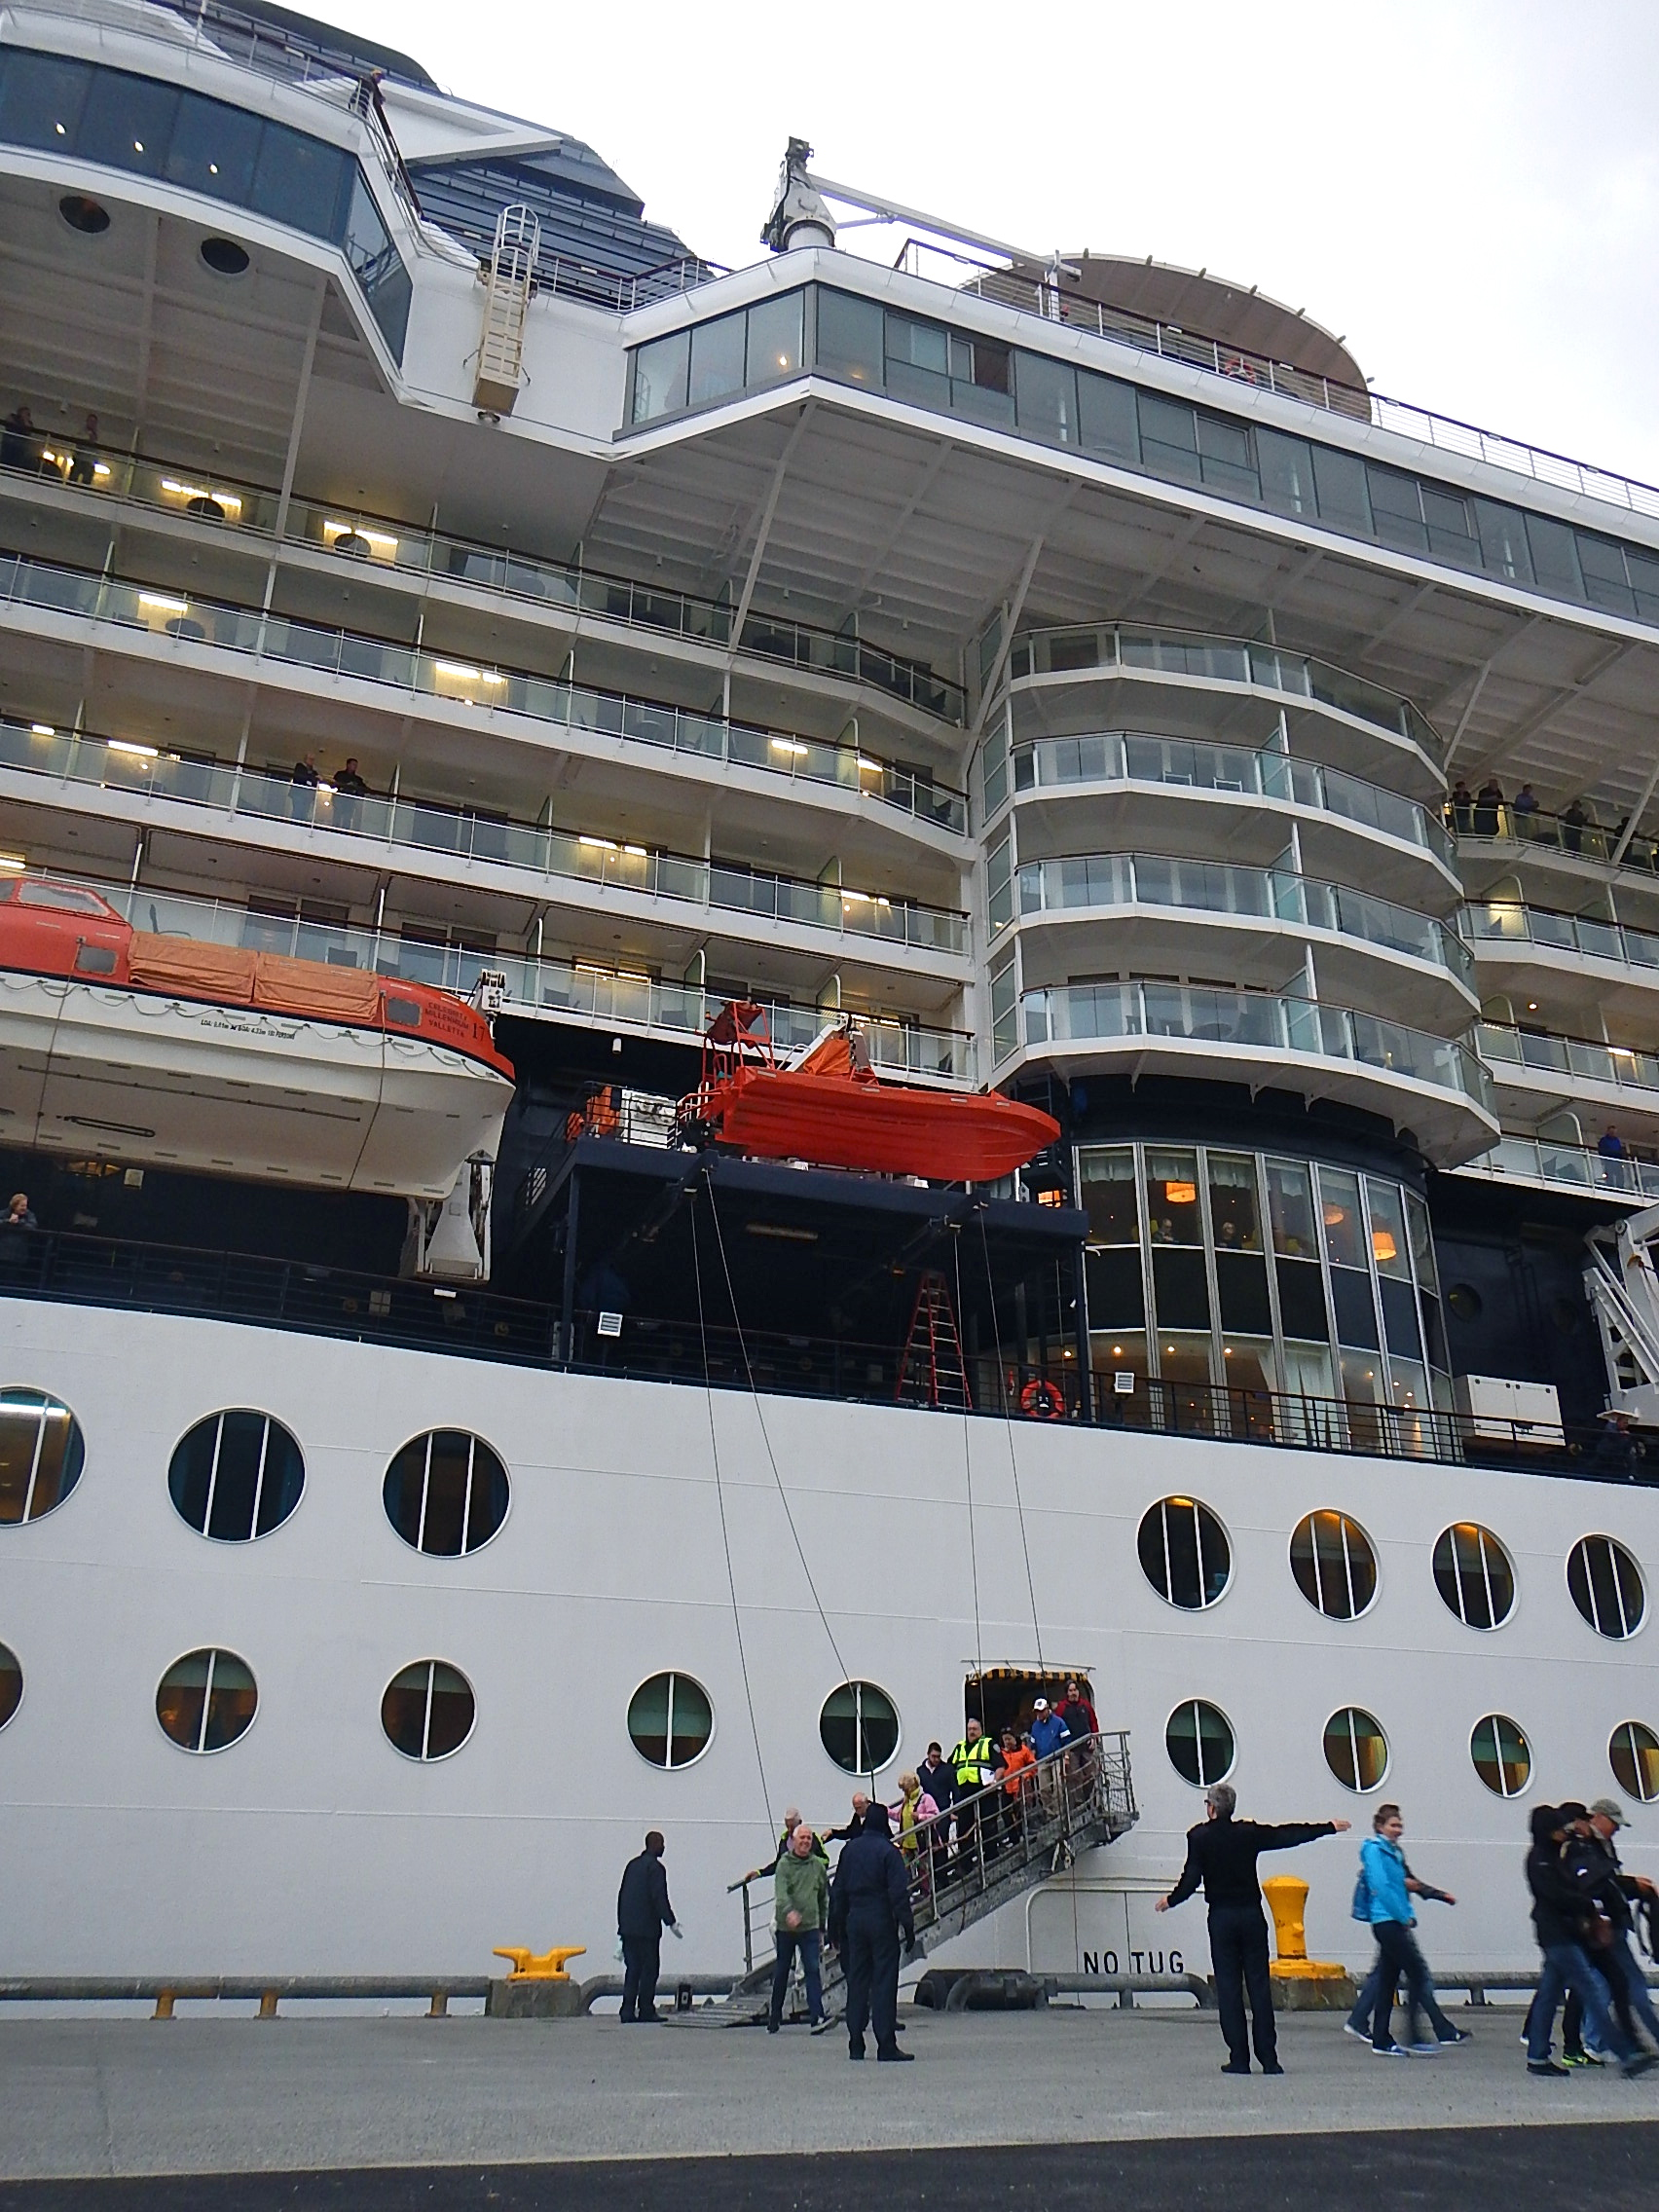 The Celebrity Millennium and another smaller cruise ship doubled Unalaska's population for a day when about 3,800 people disembarked from the vessels. (Photo by John Ryan/KUCB)